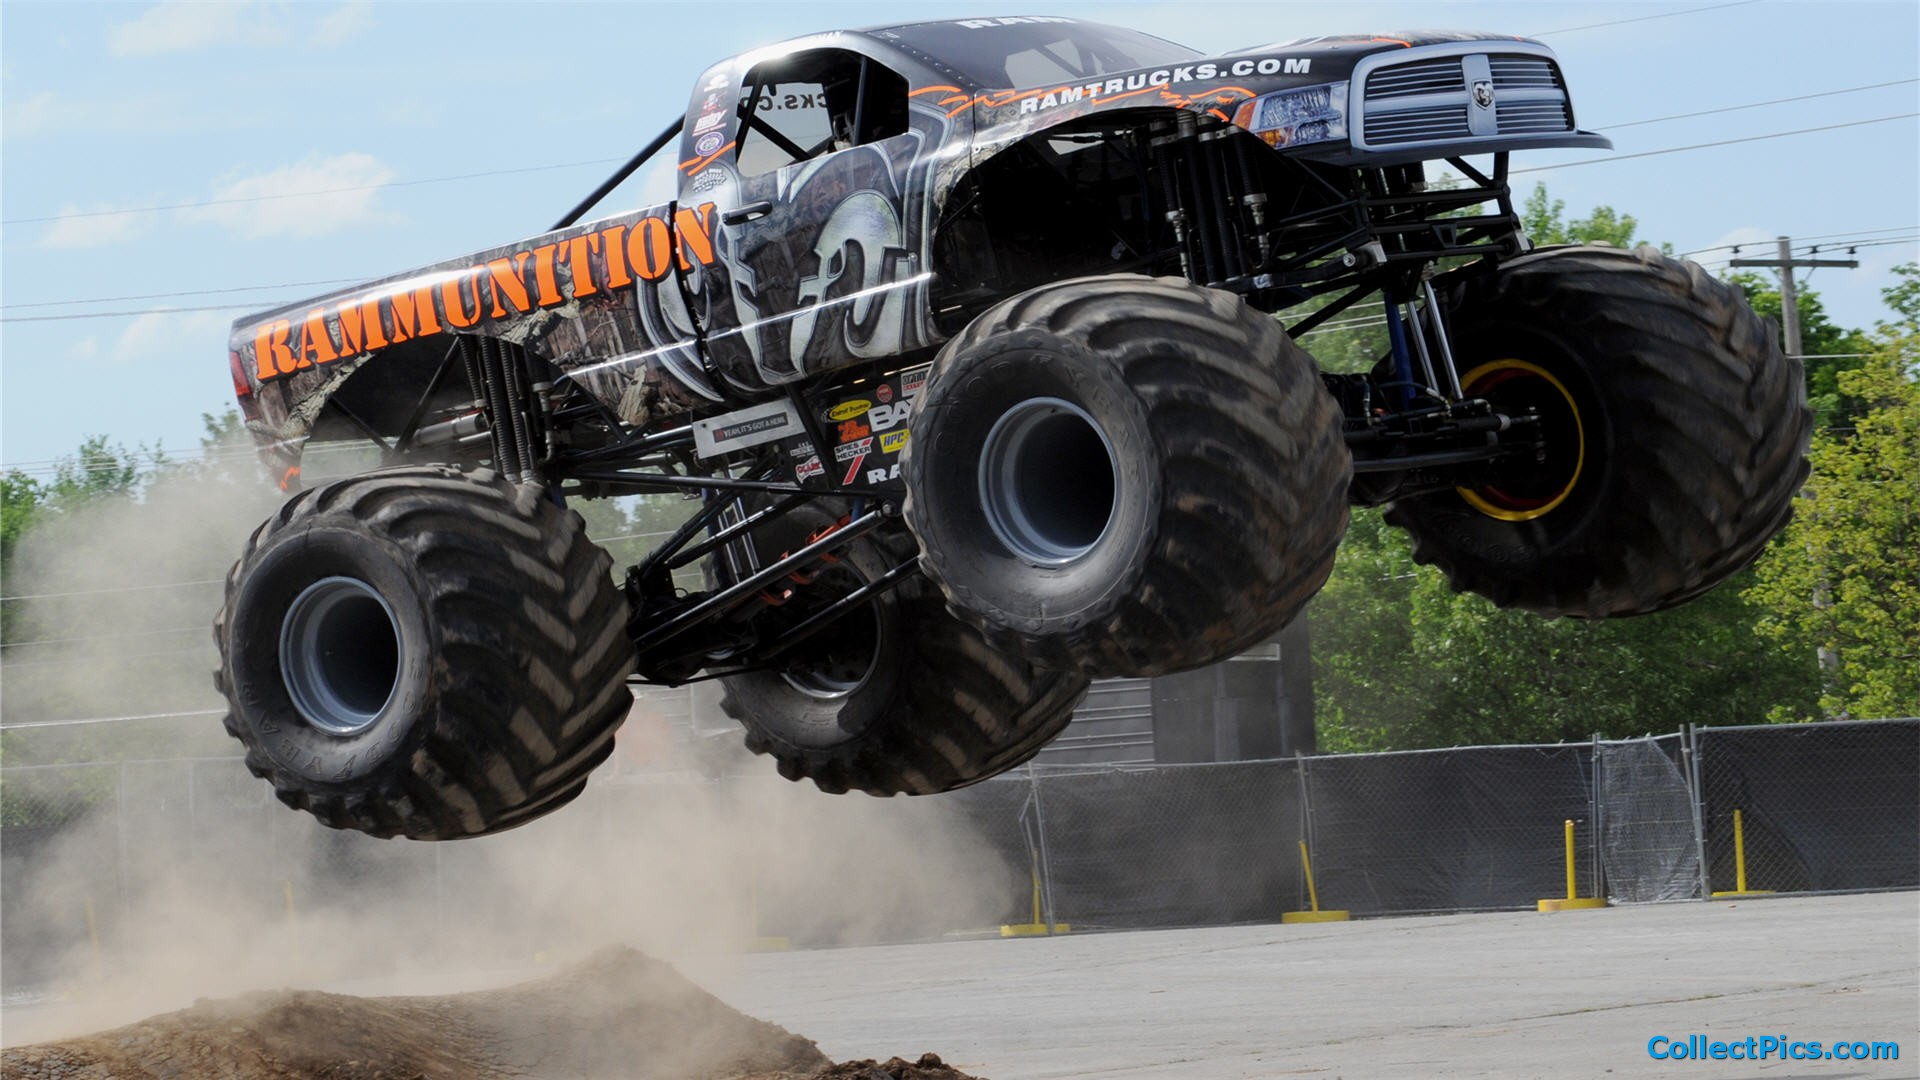 Free Download Monster Truck Wallpaper Hd 1920x1080 For Your Desktop Mobile Tablet Explore 68 Monster Trucks Wallpaper Grave Digger Wallpaper Grave Digger Monster Truck Wallpaper Monster Jam Wallpaper